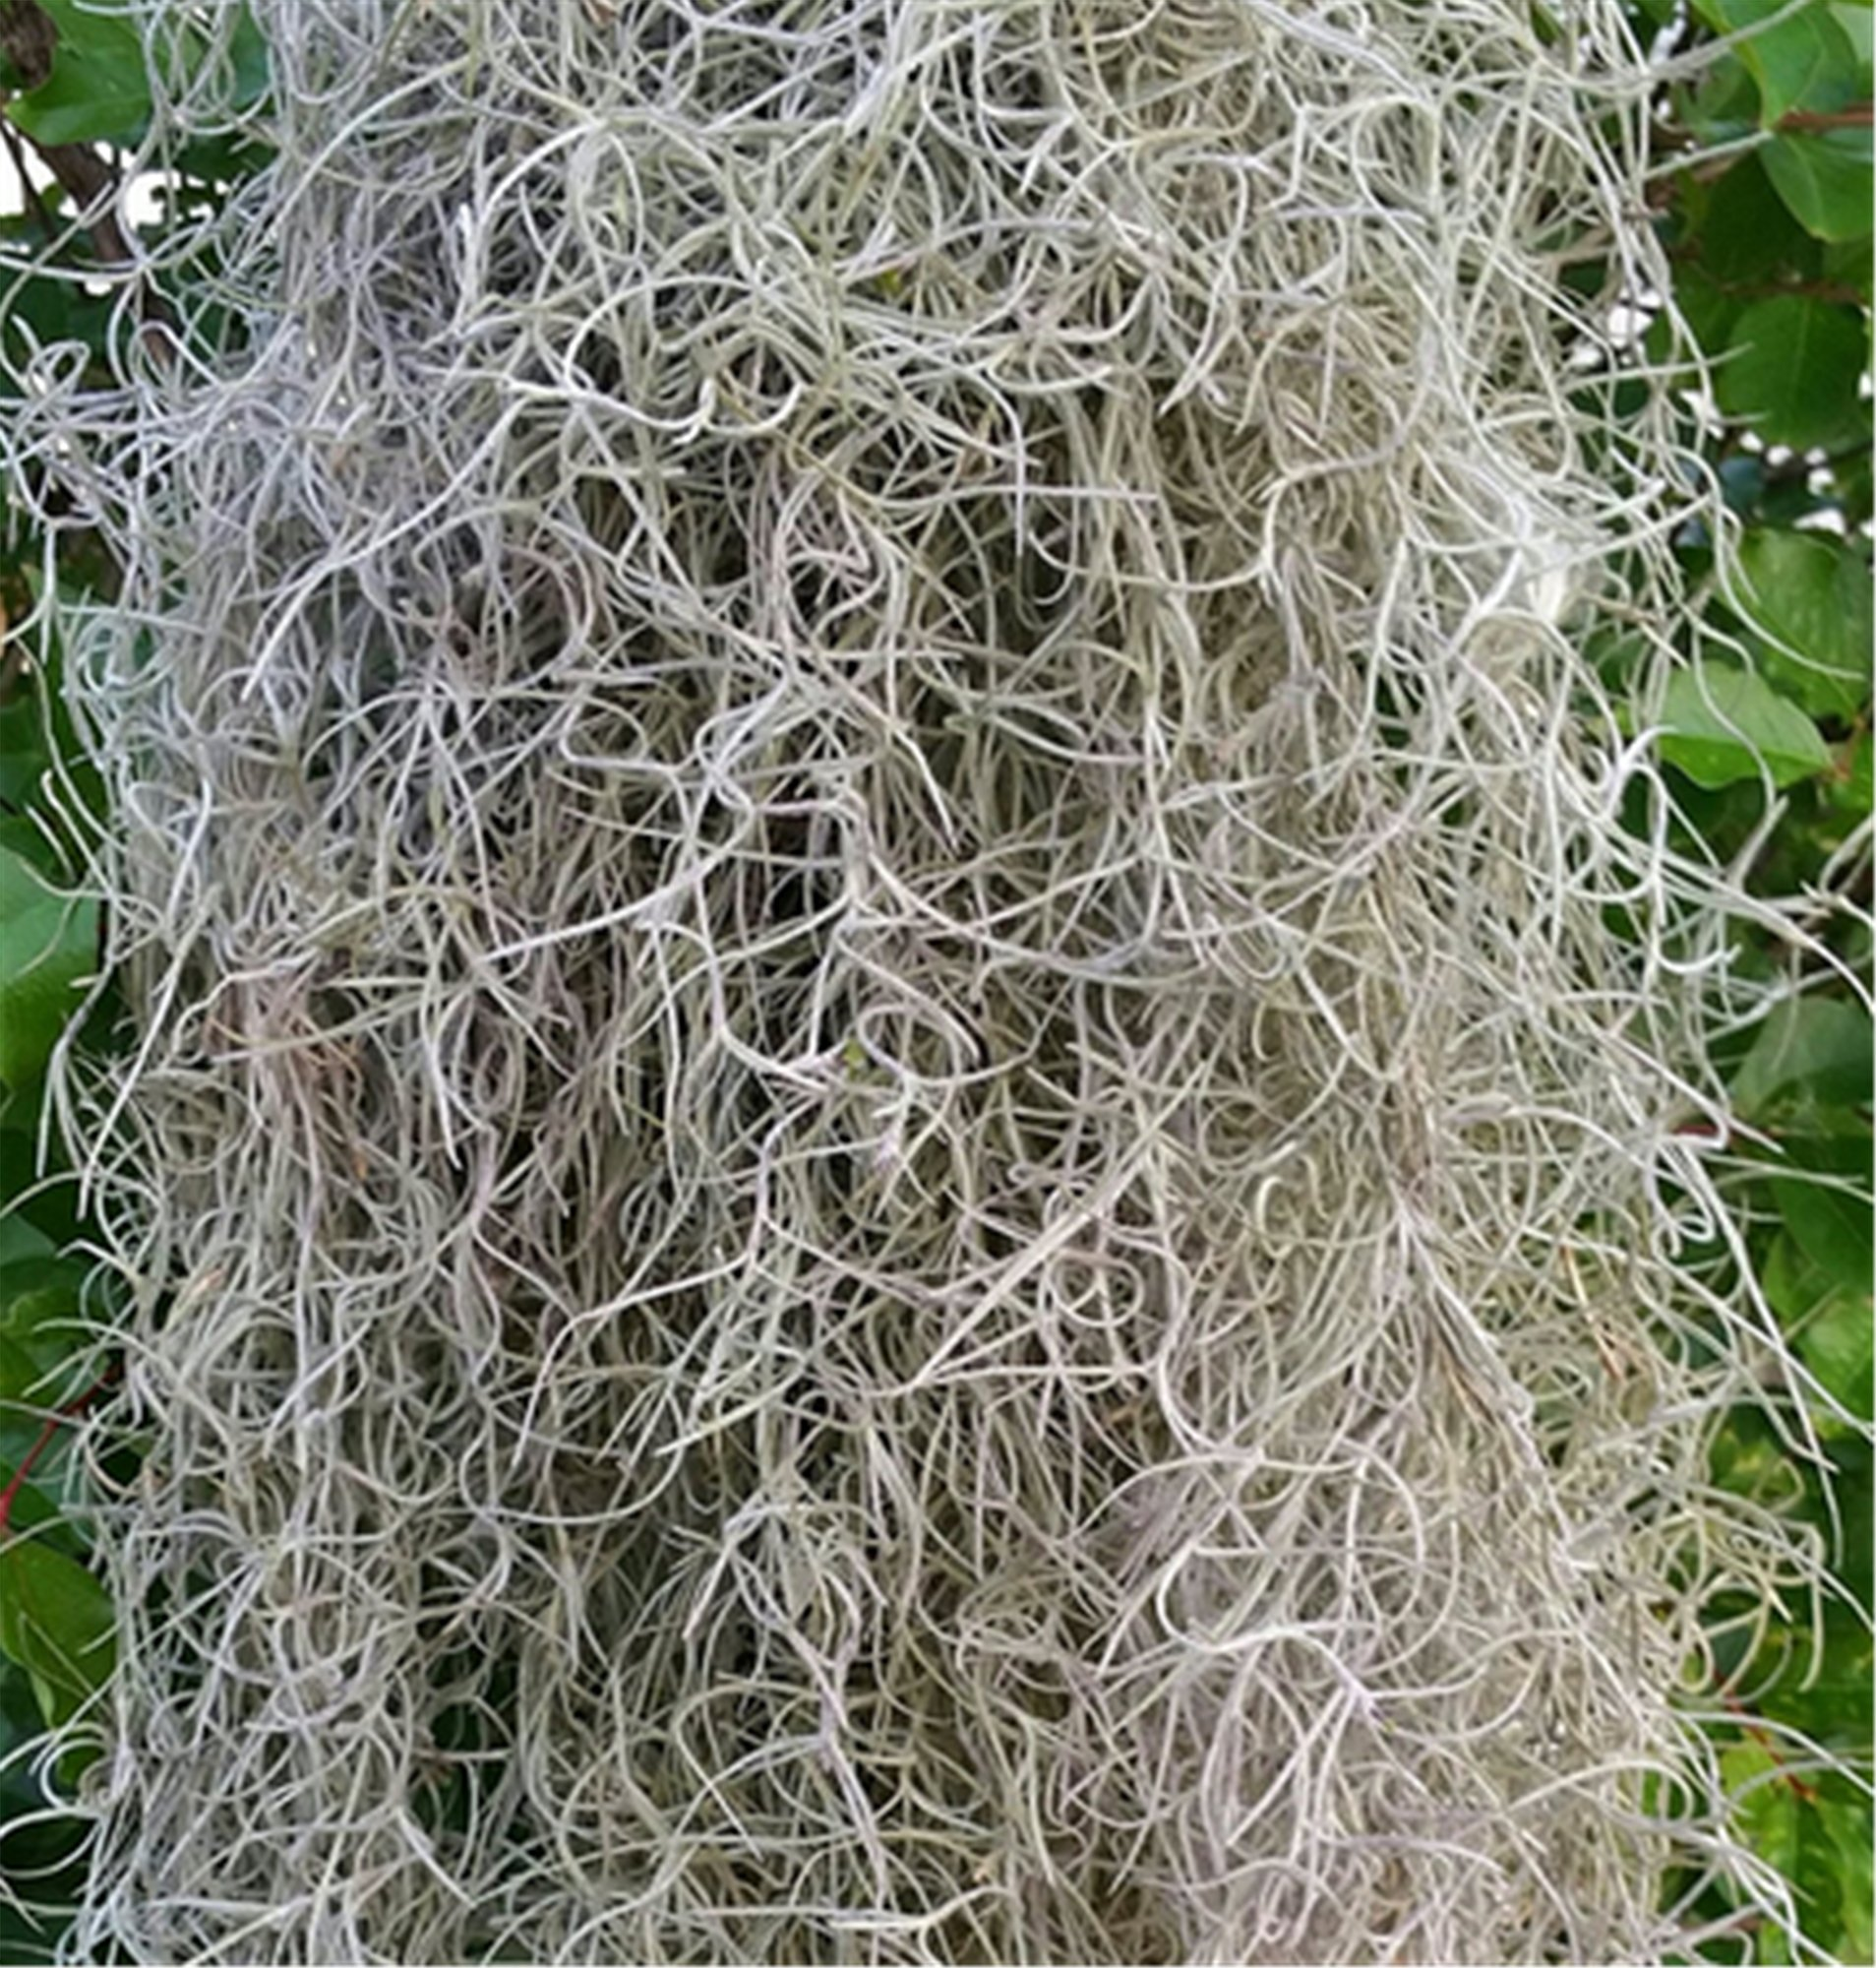 Real Spanish Moss approx 5 lbs boxed, cleaned by Moss4U